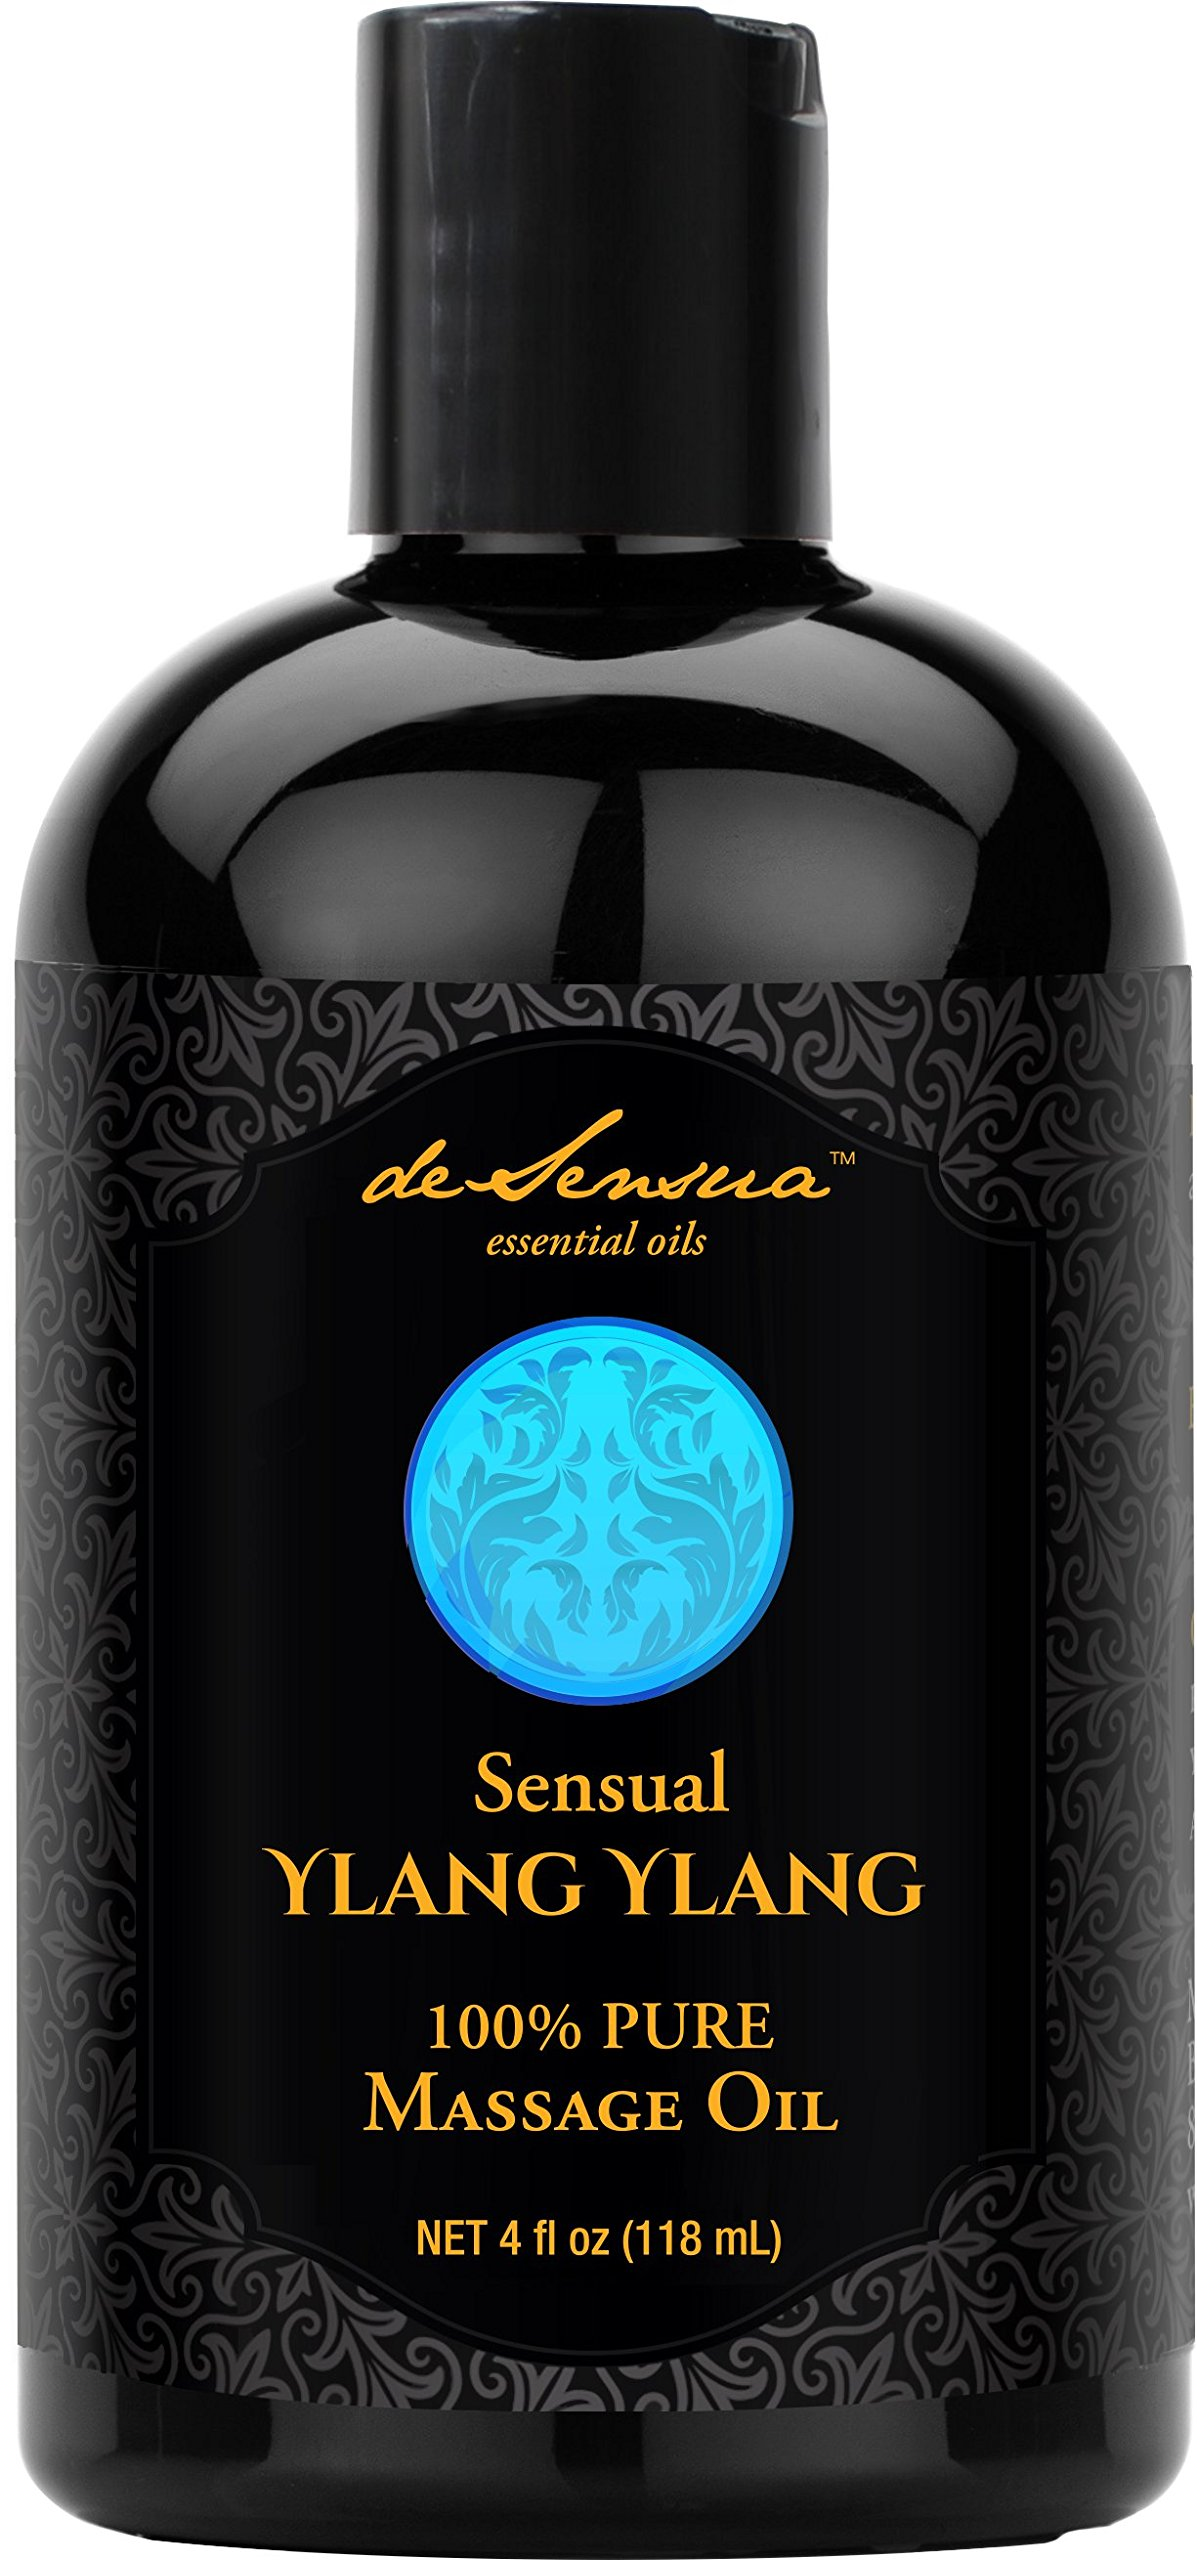 Sensual Ylang Ylang Massage Essential Oils by deSensua – Hydrating and Relaxing Aromatherapy – Soft Glide Helps Relieve Sore Muscles with Deep Tissue Pressure – Natural, Calming Scent